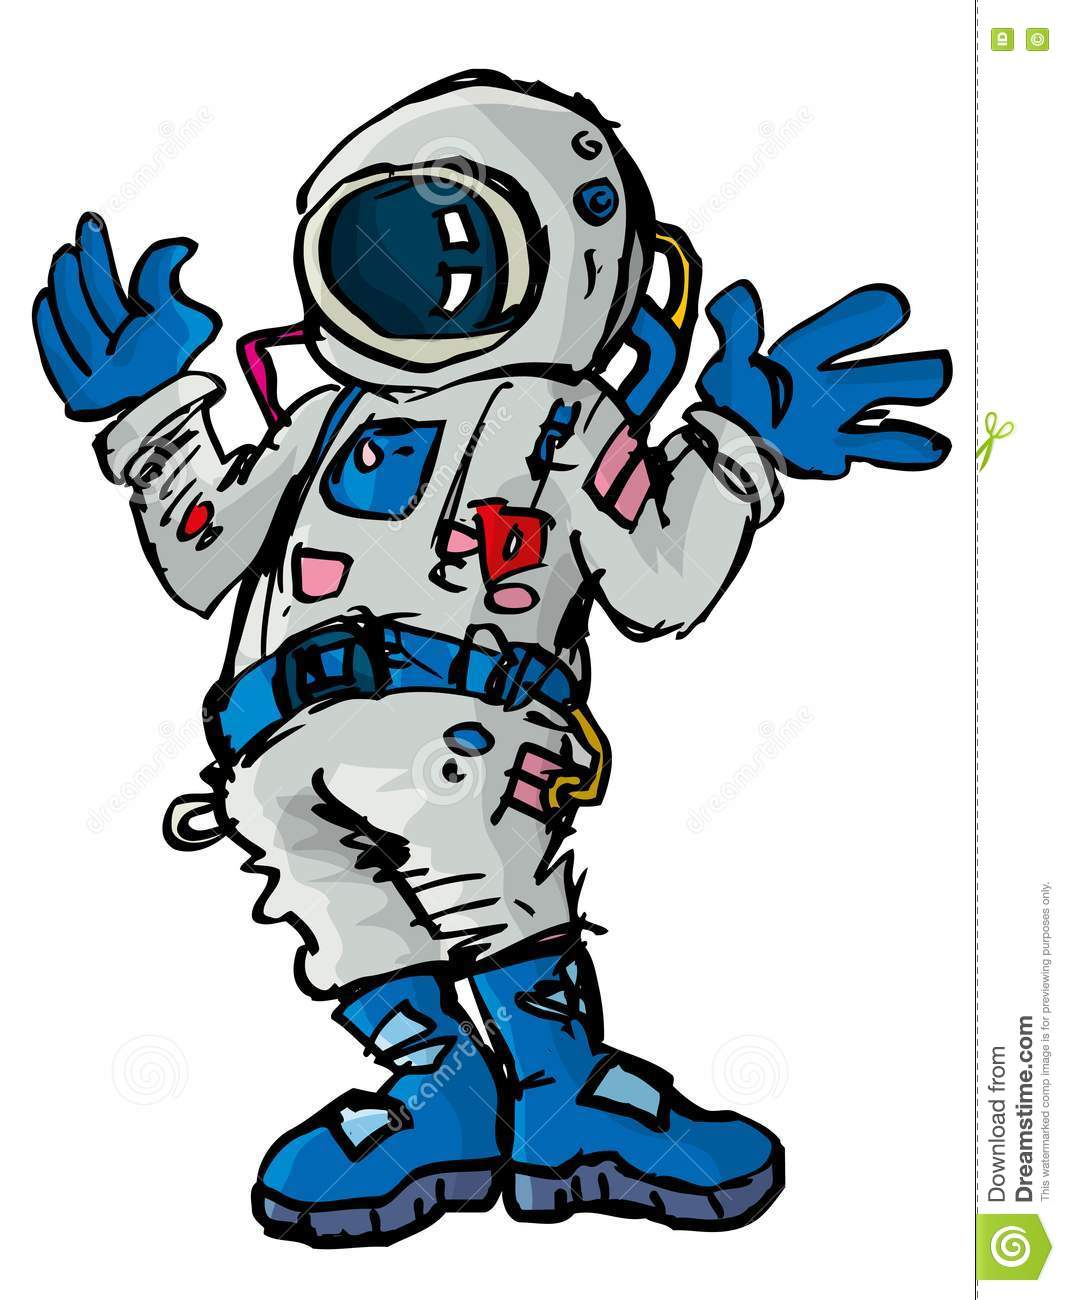 Cartoon Astronaout In A Space Suit Royalty Free Stock ...